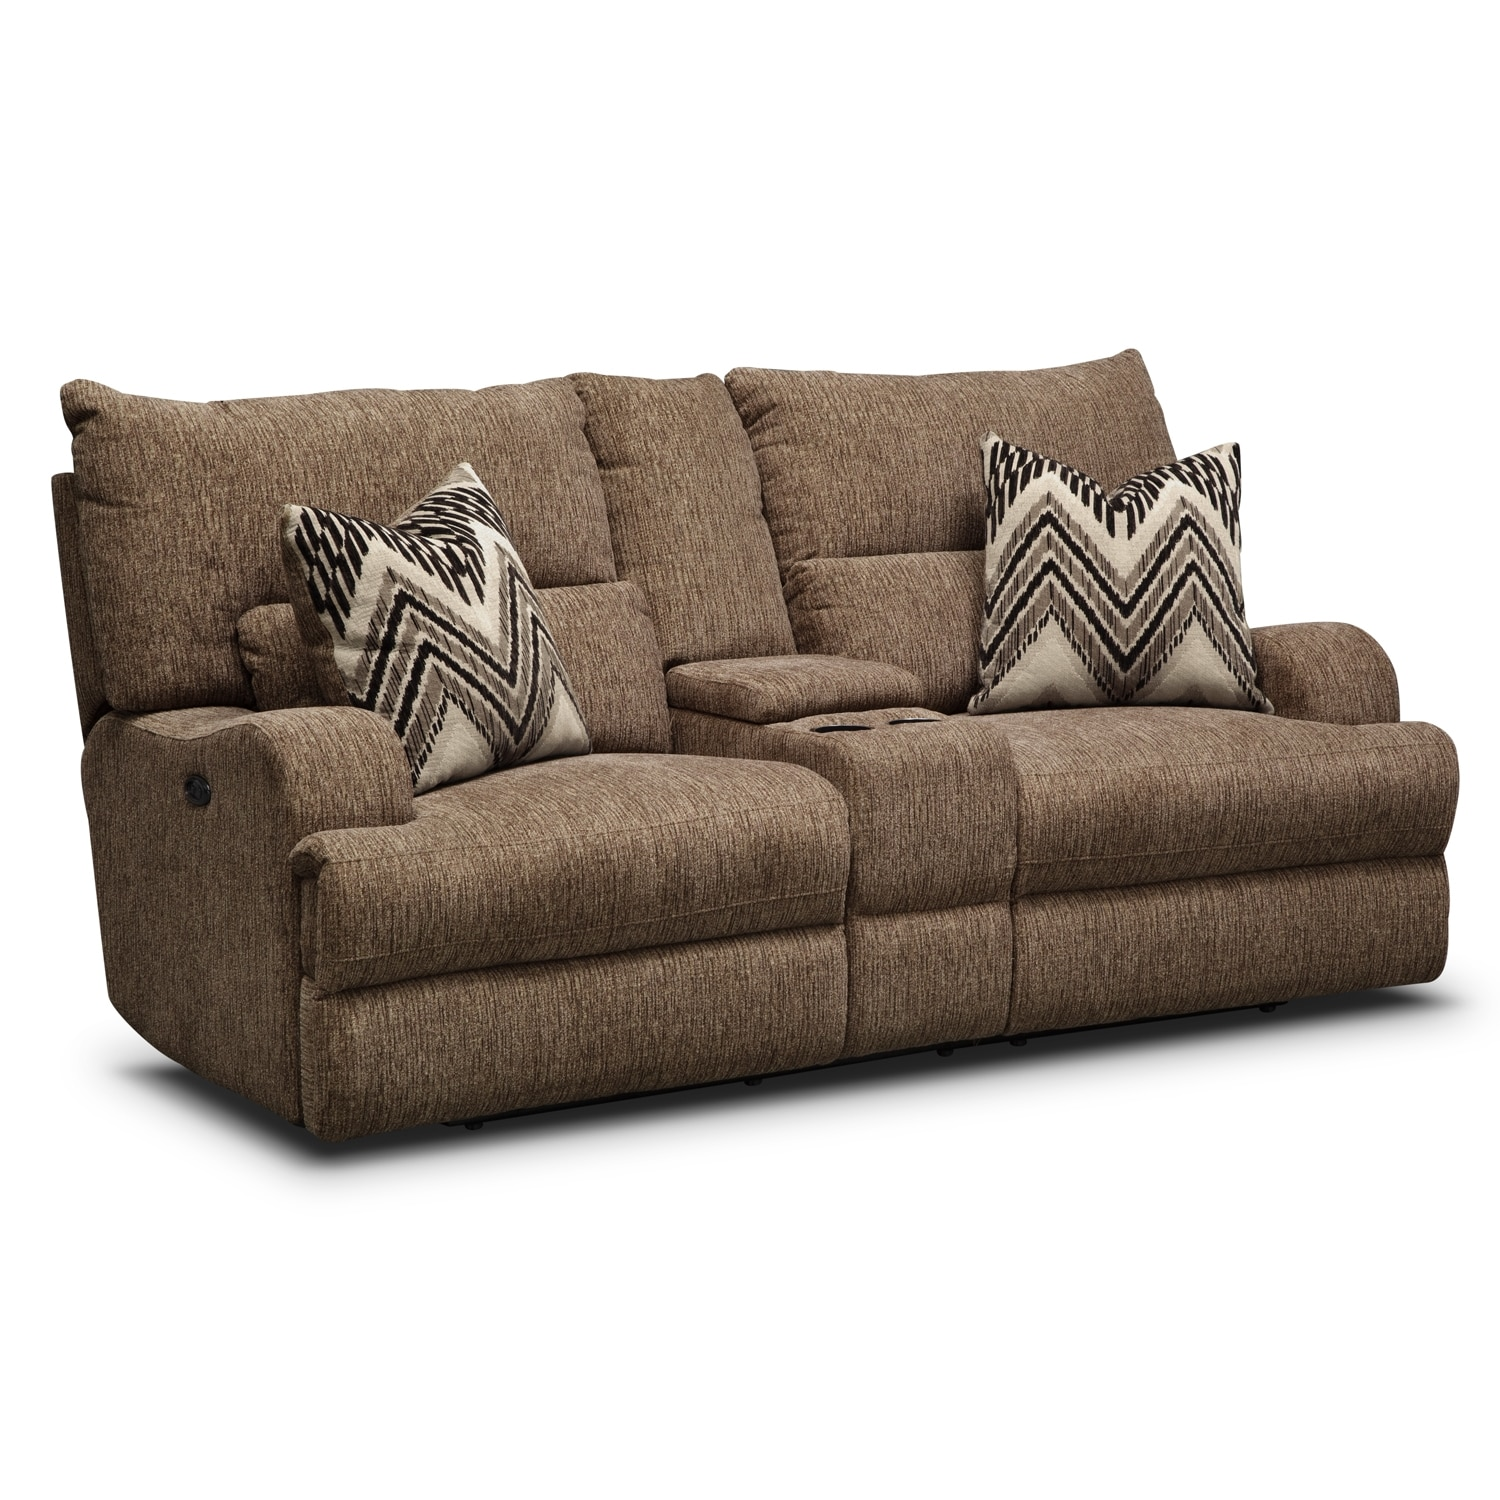 Living Room Furniture - Sundance Power Reclining Loveseat with Console